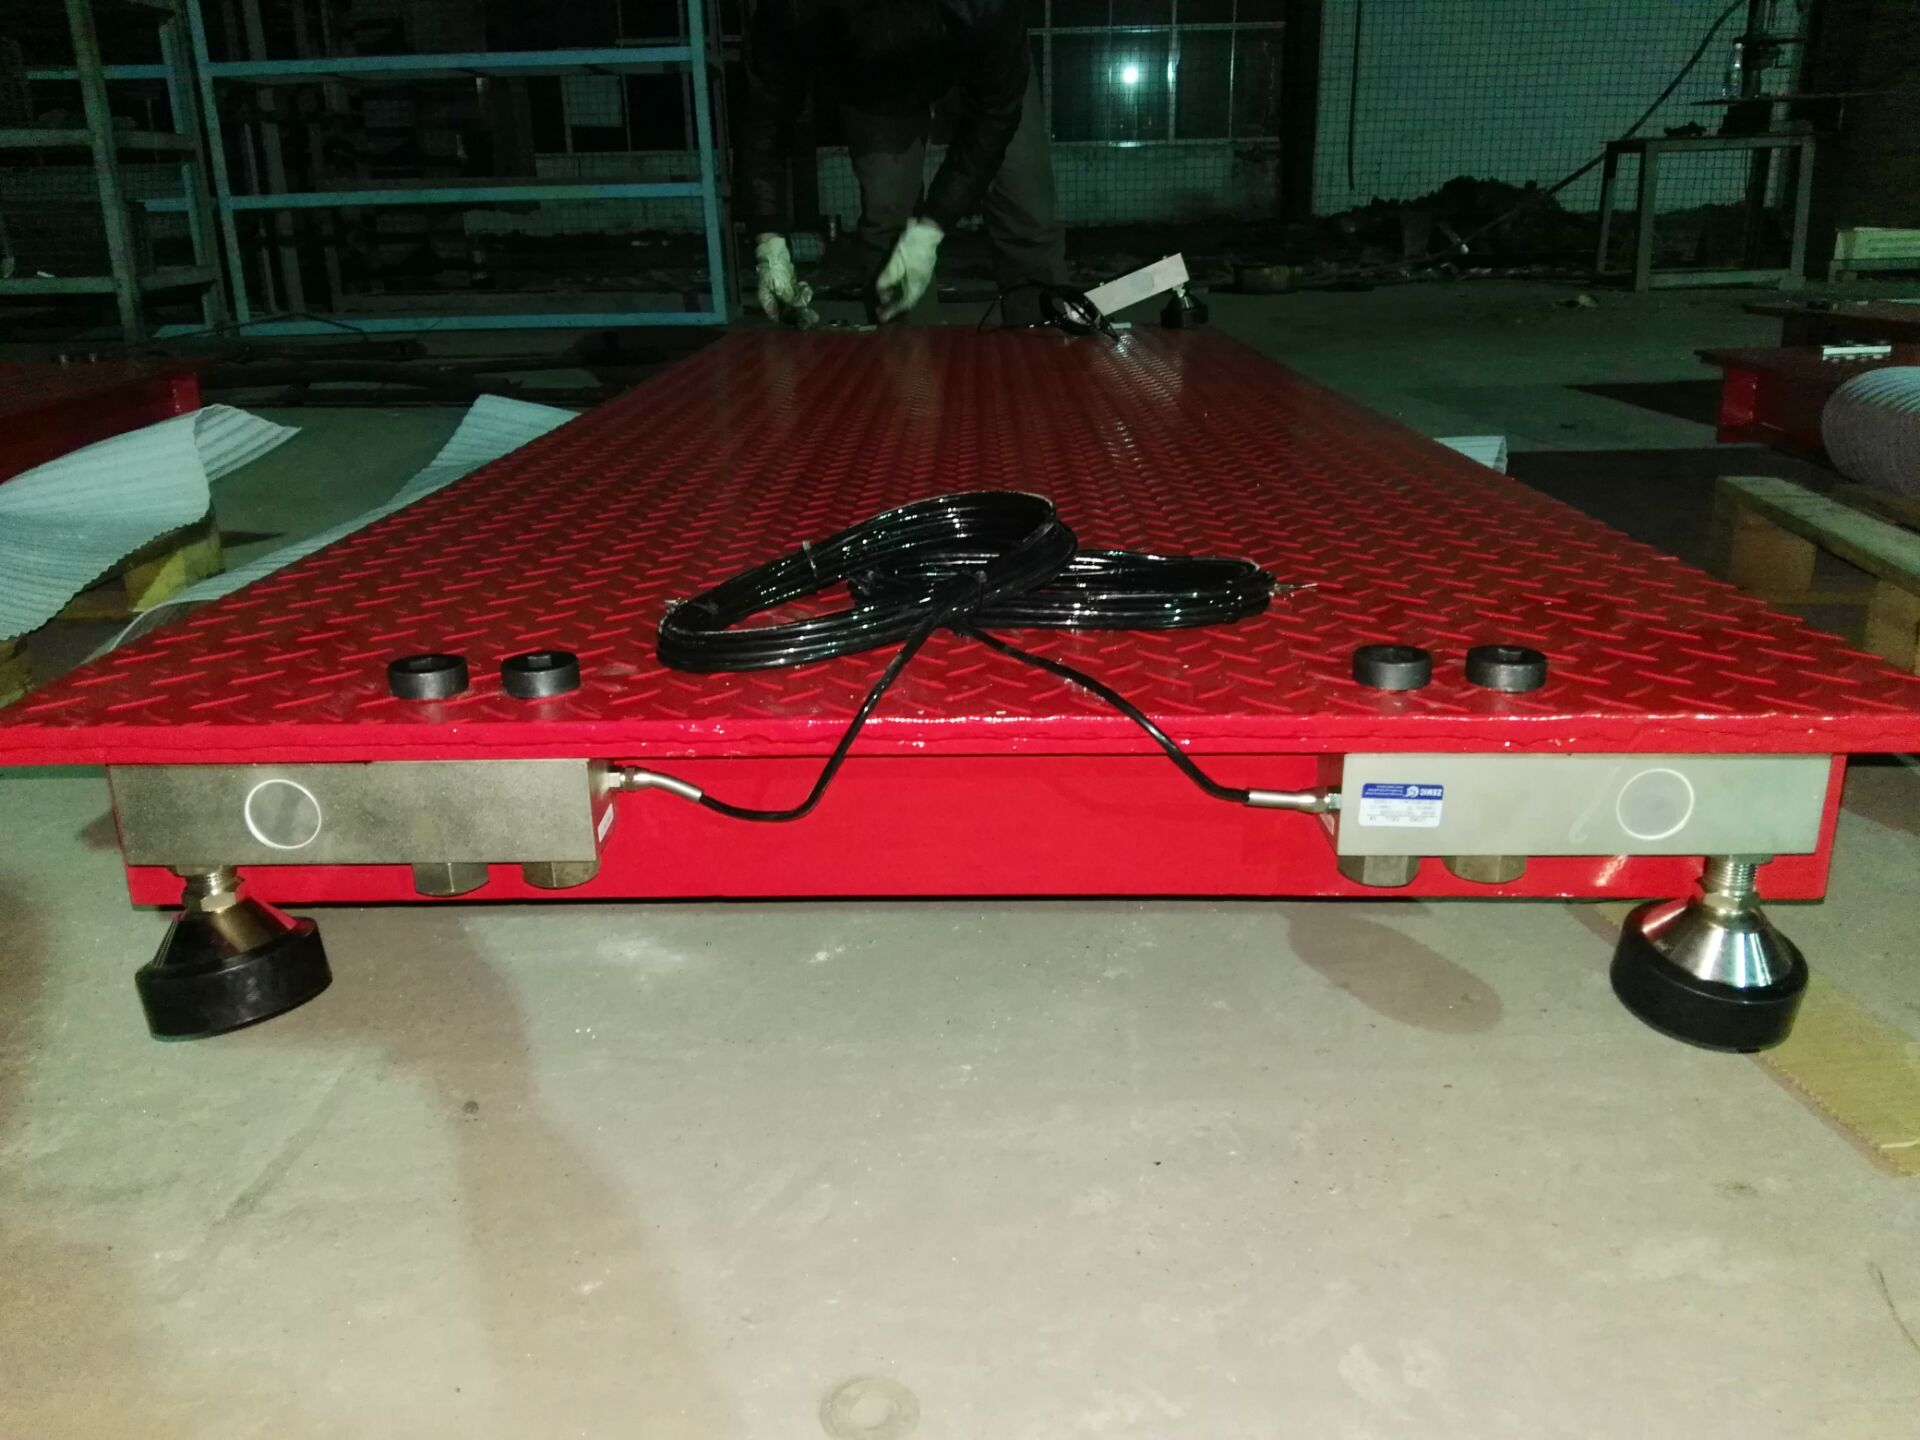 KYLOWEIGH Container Weighing Scale